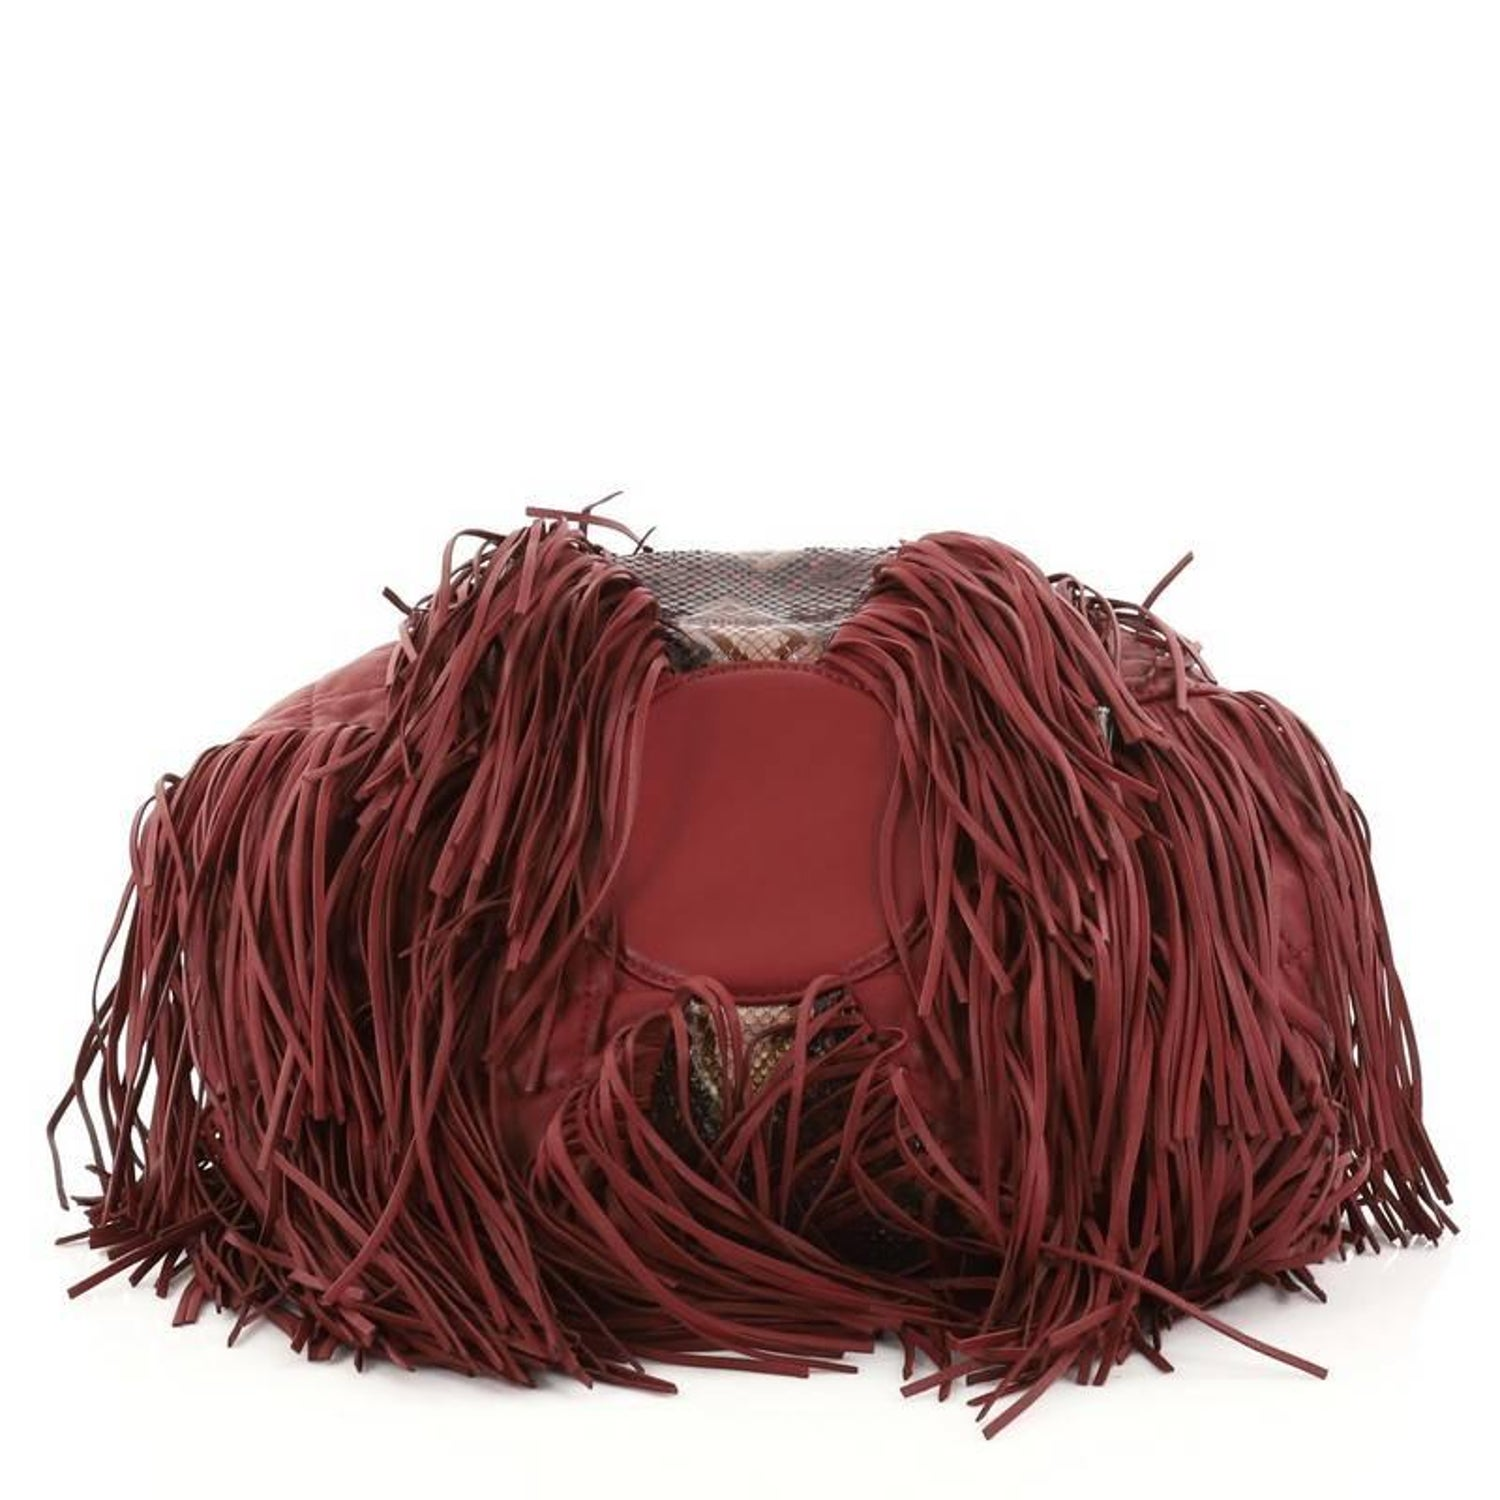 e6abb8a5992b Chanel Paris-Dallas Drawstring Fringe Shoulder Bag Python and Leather Large  at 1stdibs